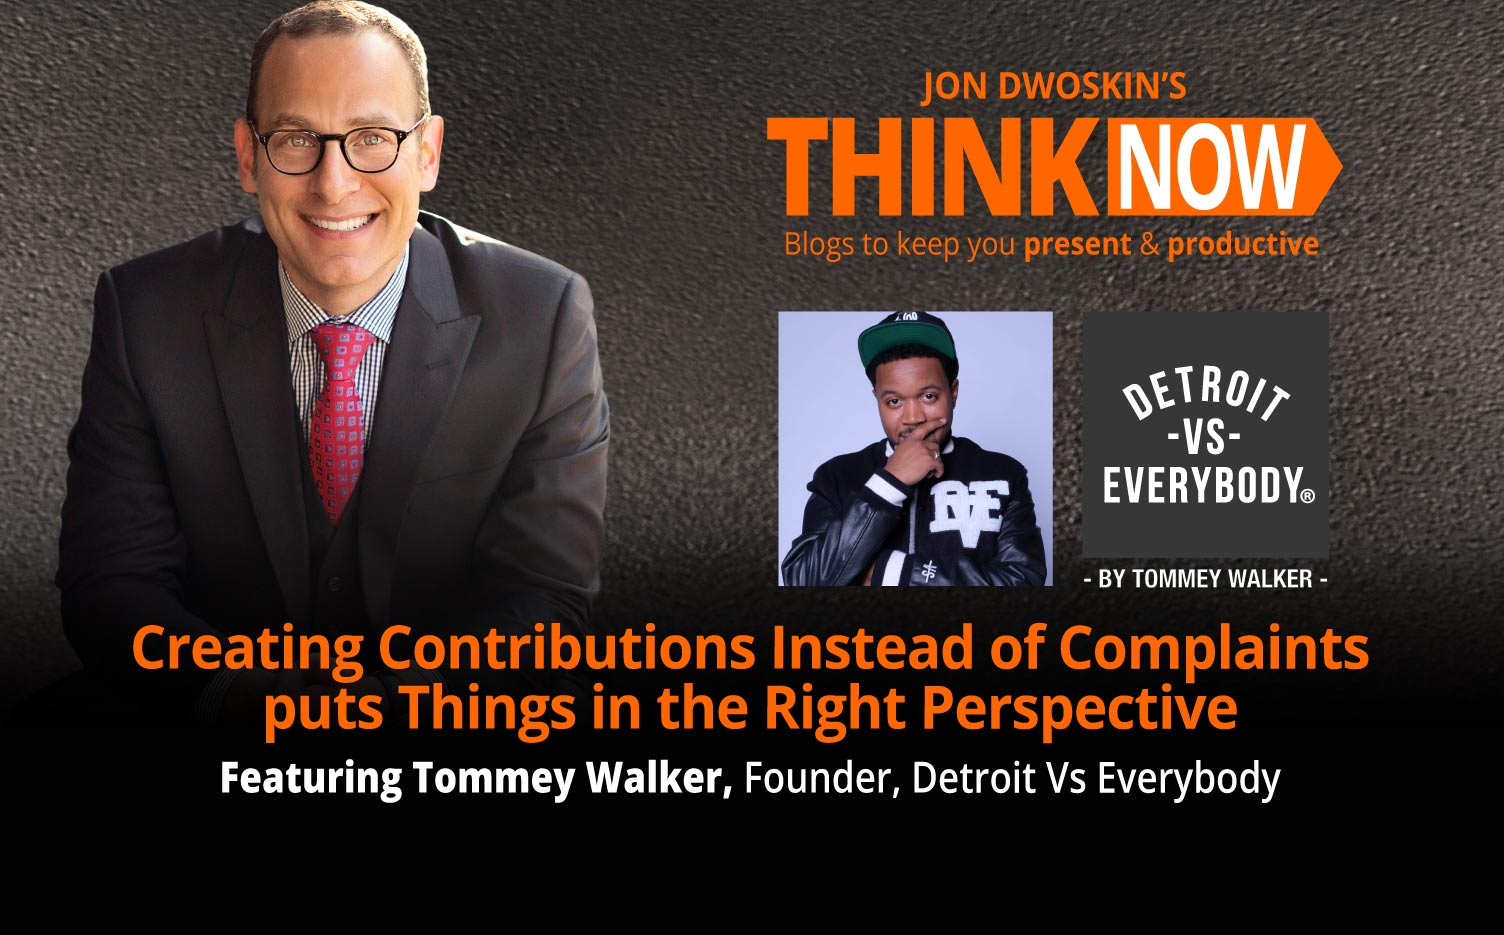 Jon Dwoskin's THINK NOW Blog: Creating Contributions Instead of Complaints puts Things in the Right Perspective